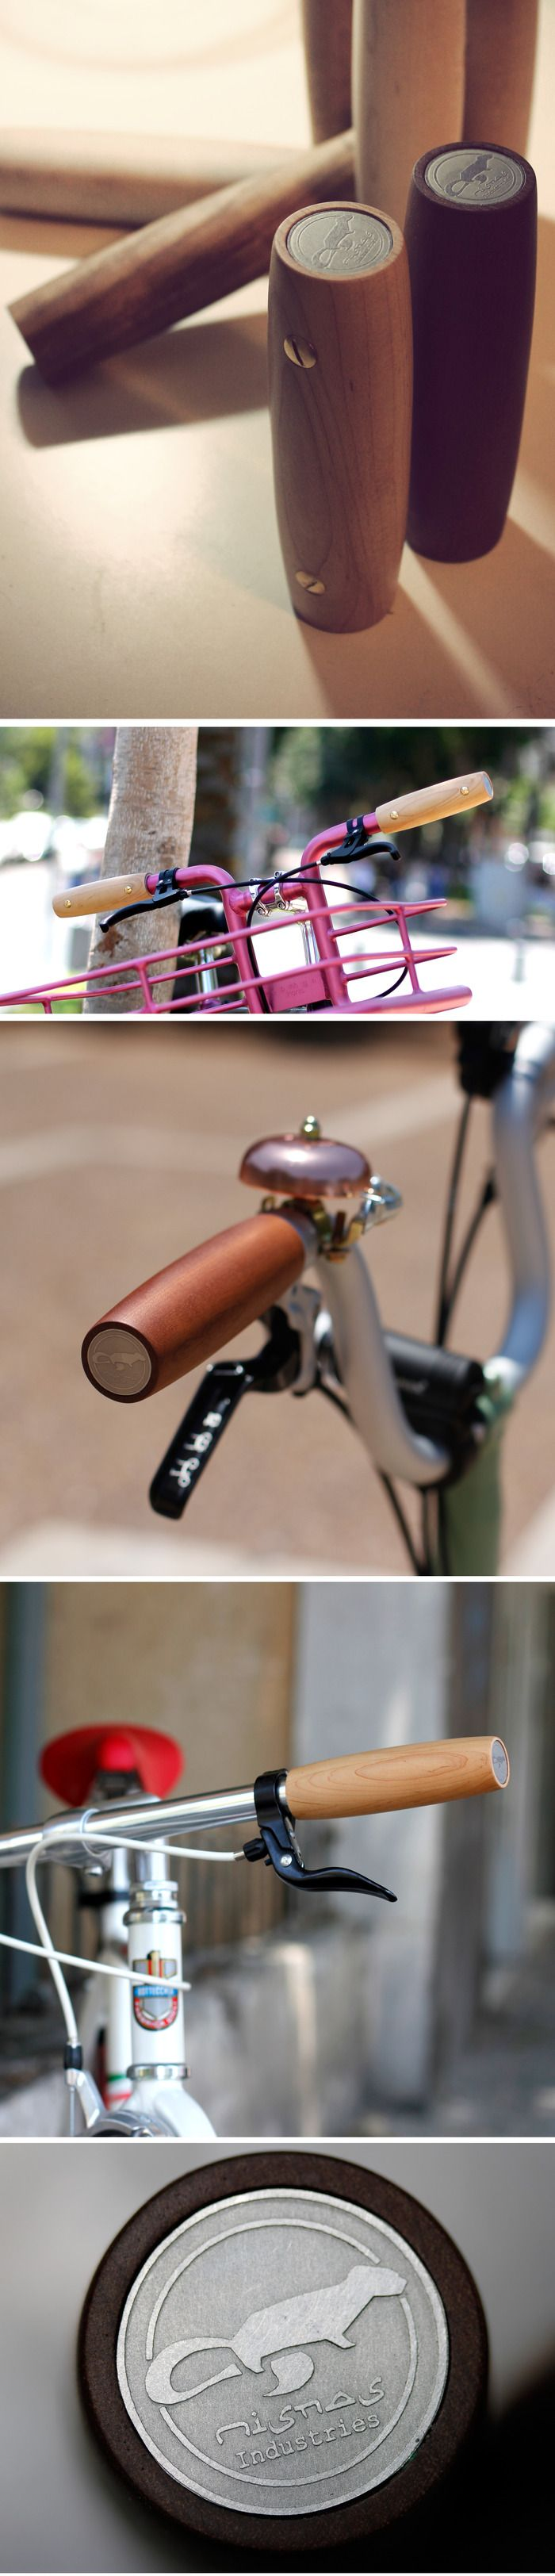 613 best fixedturbines images on Pinterest | Bicycle, Bicycles and ...